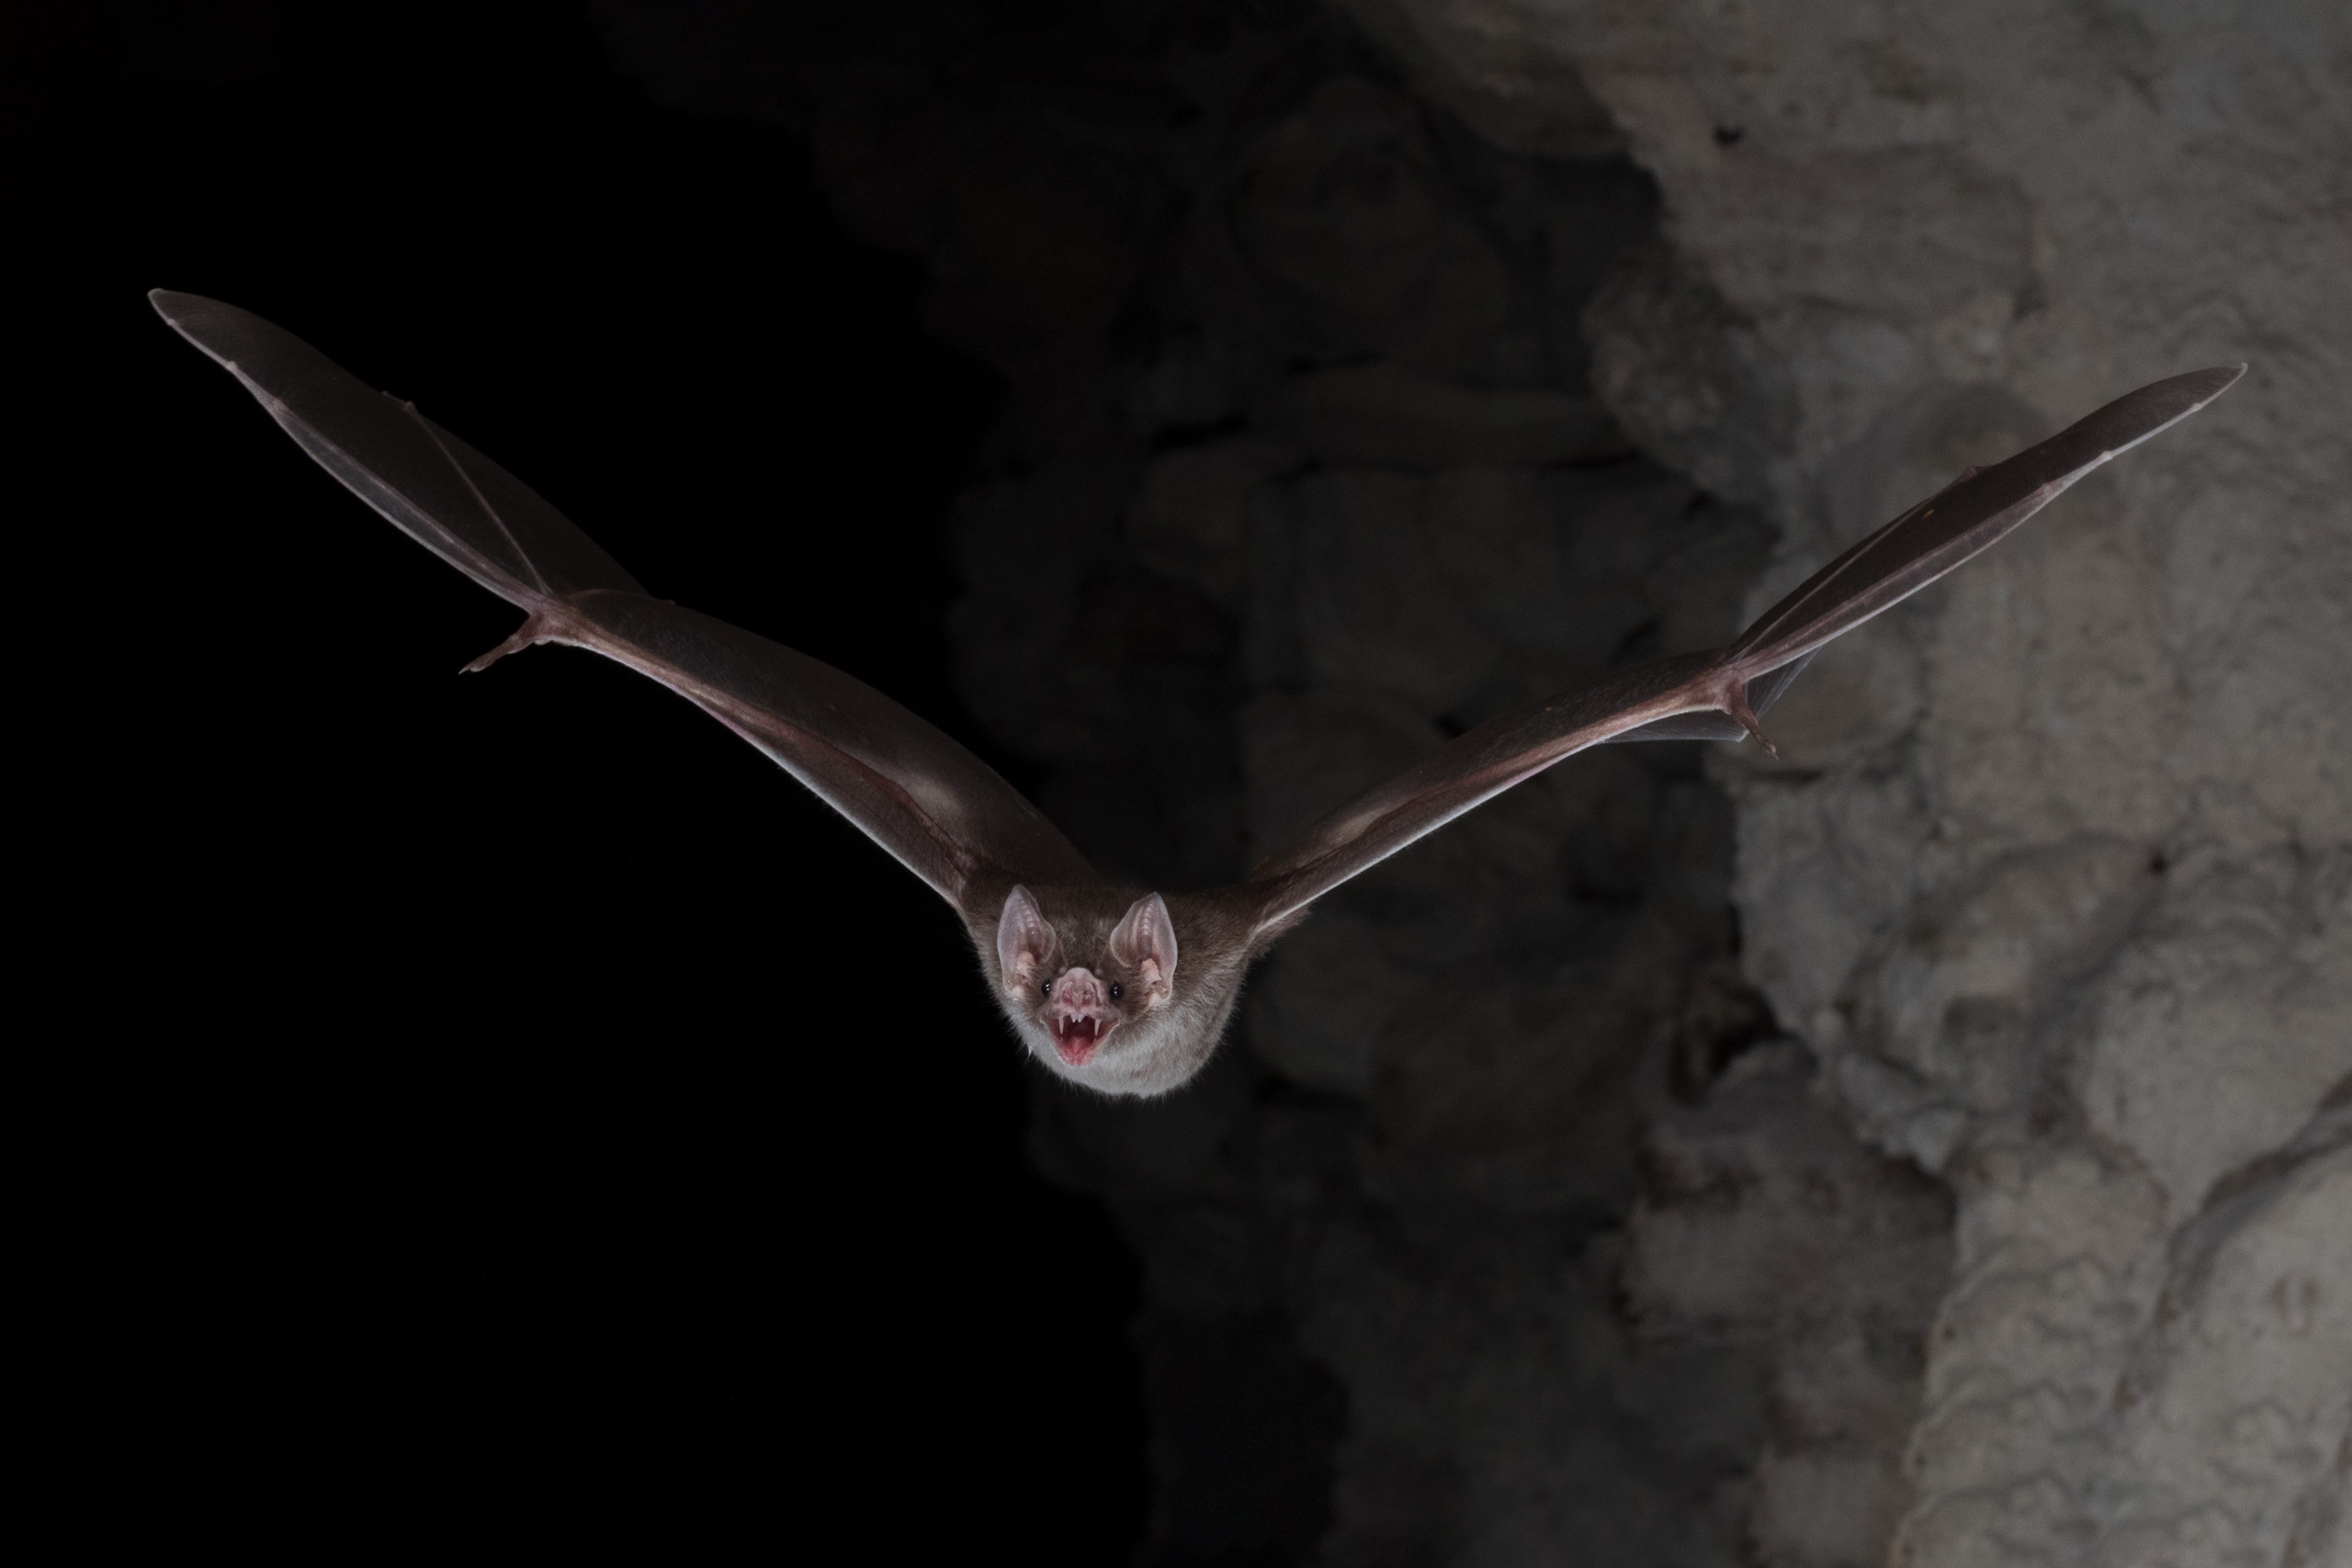 Bat flying directly at camera